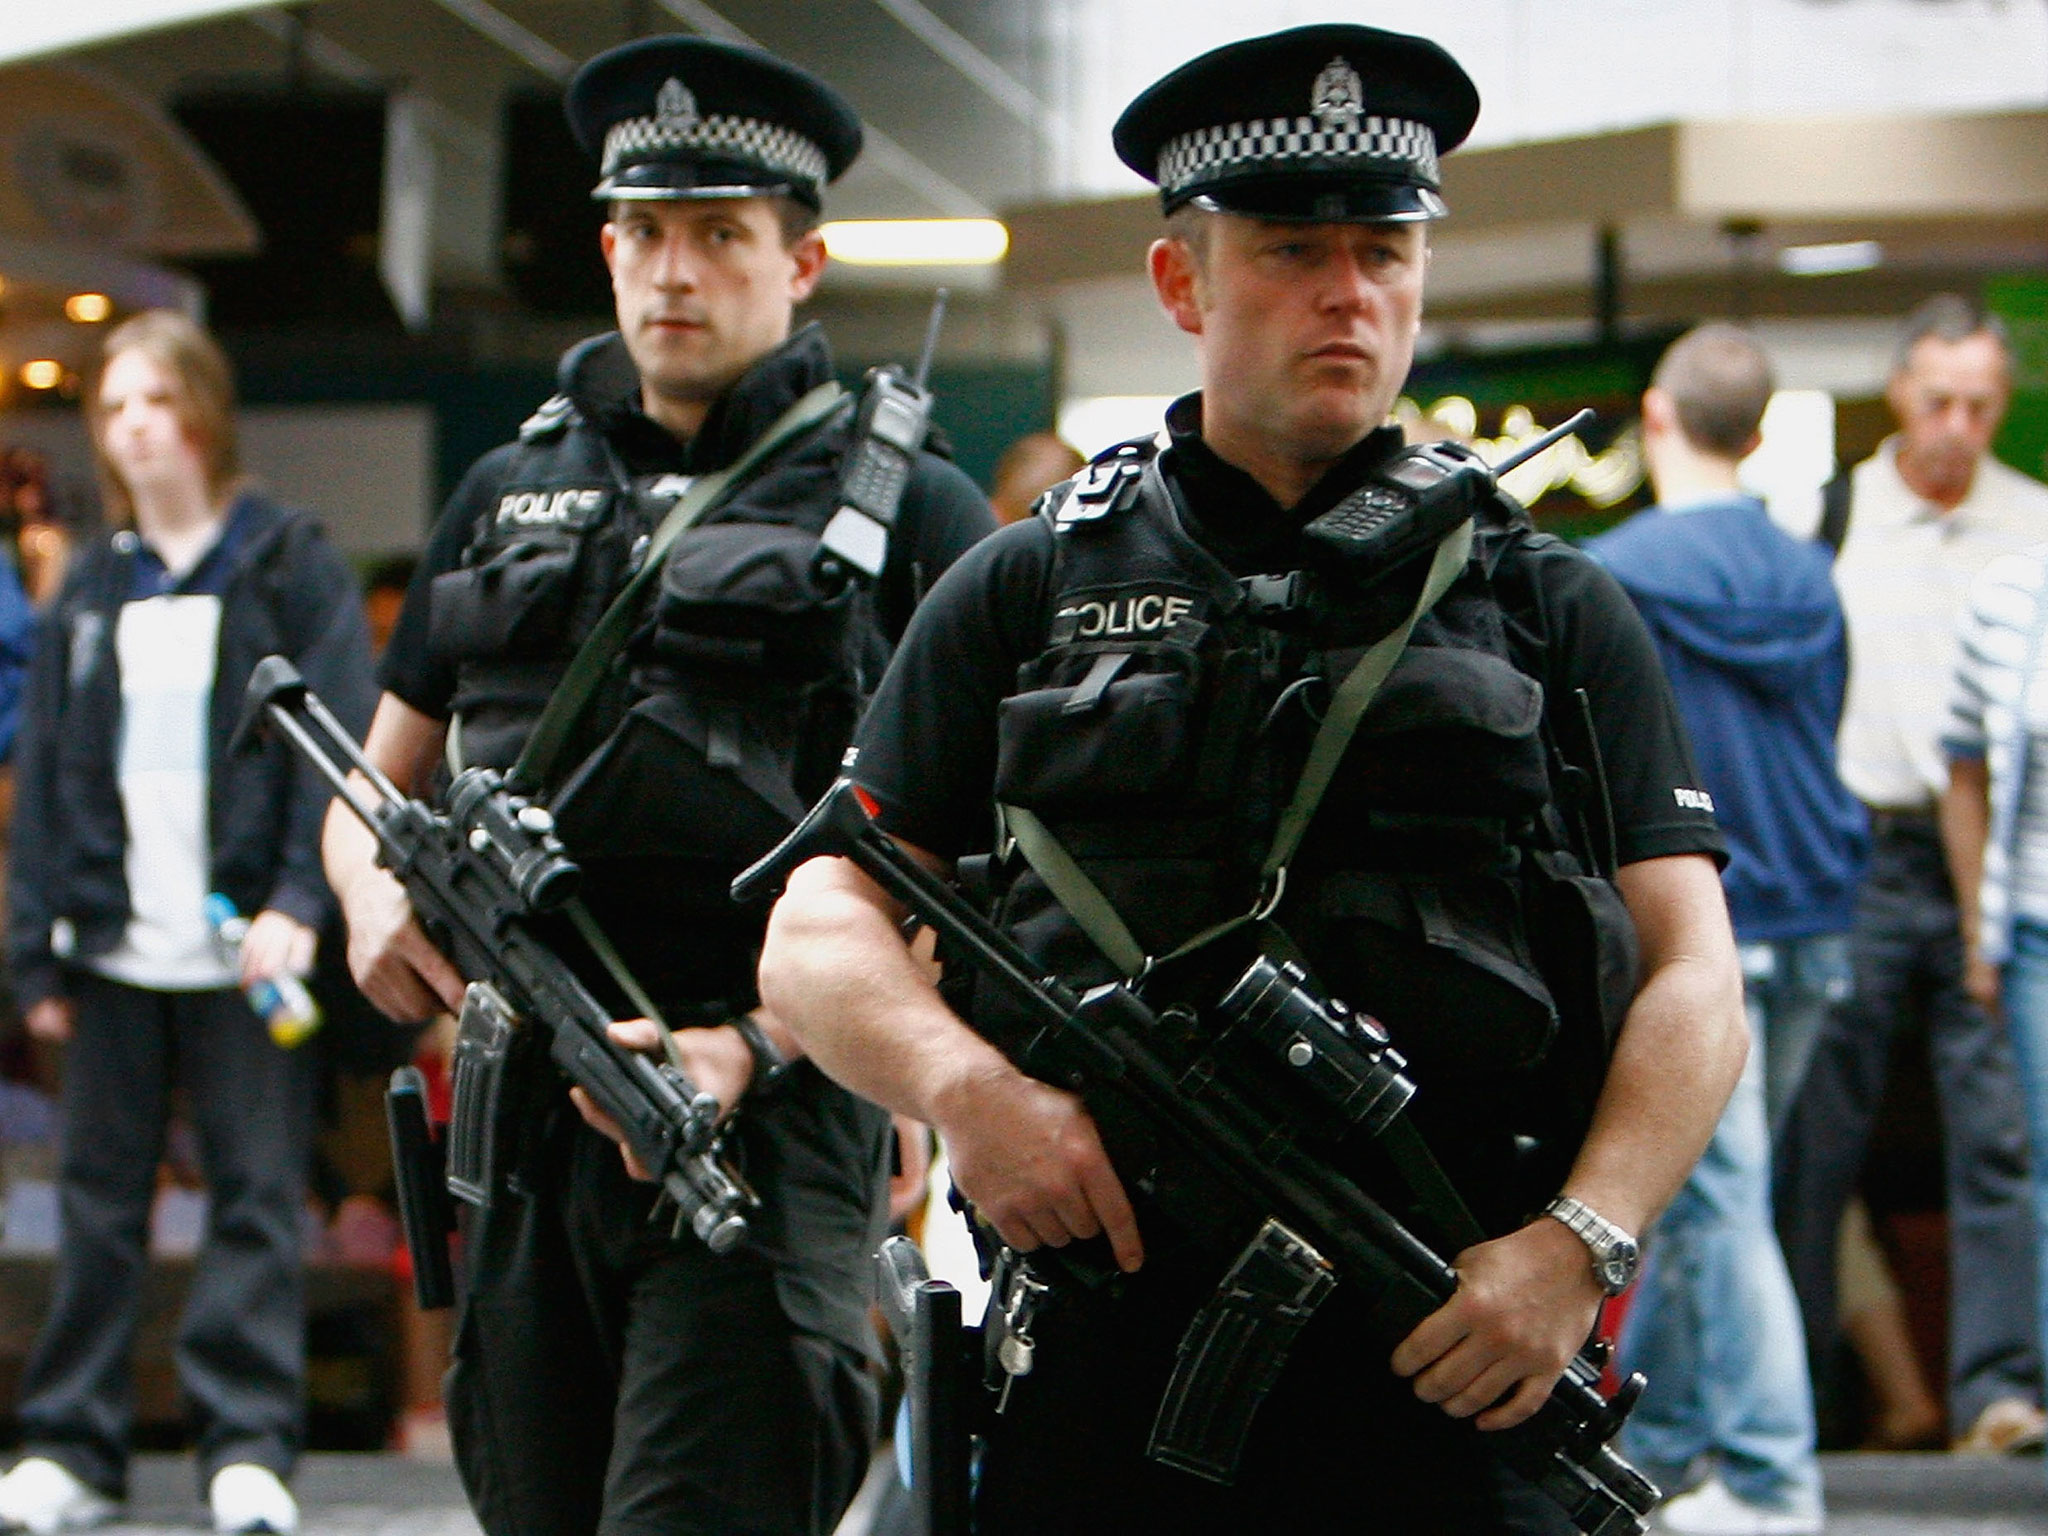 5-Armed-police-Getty